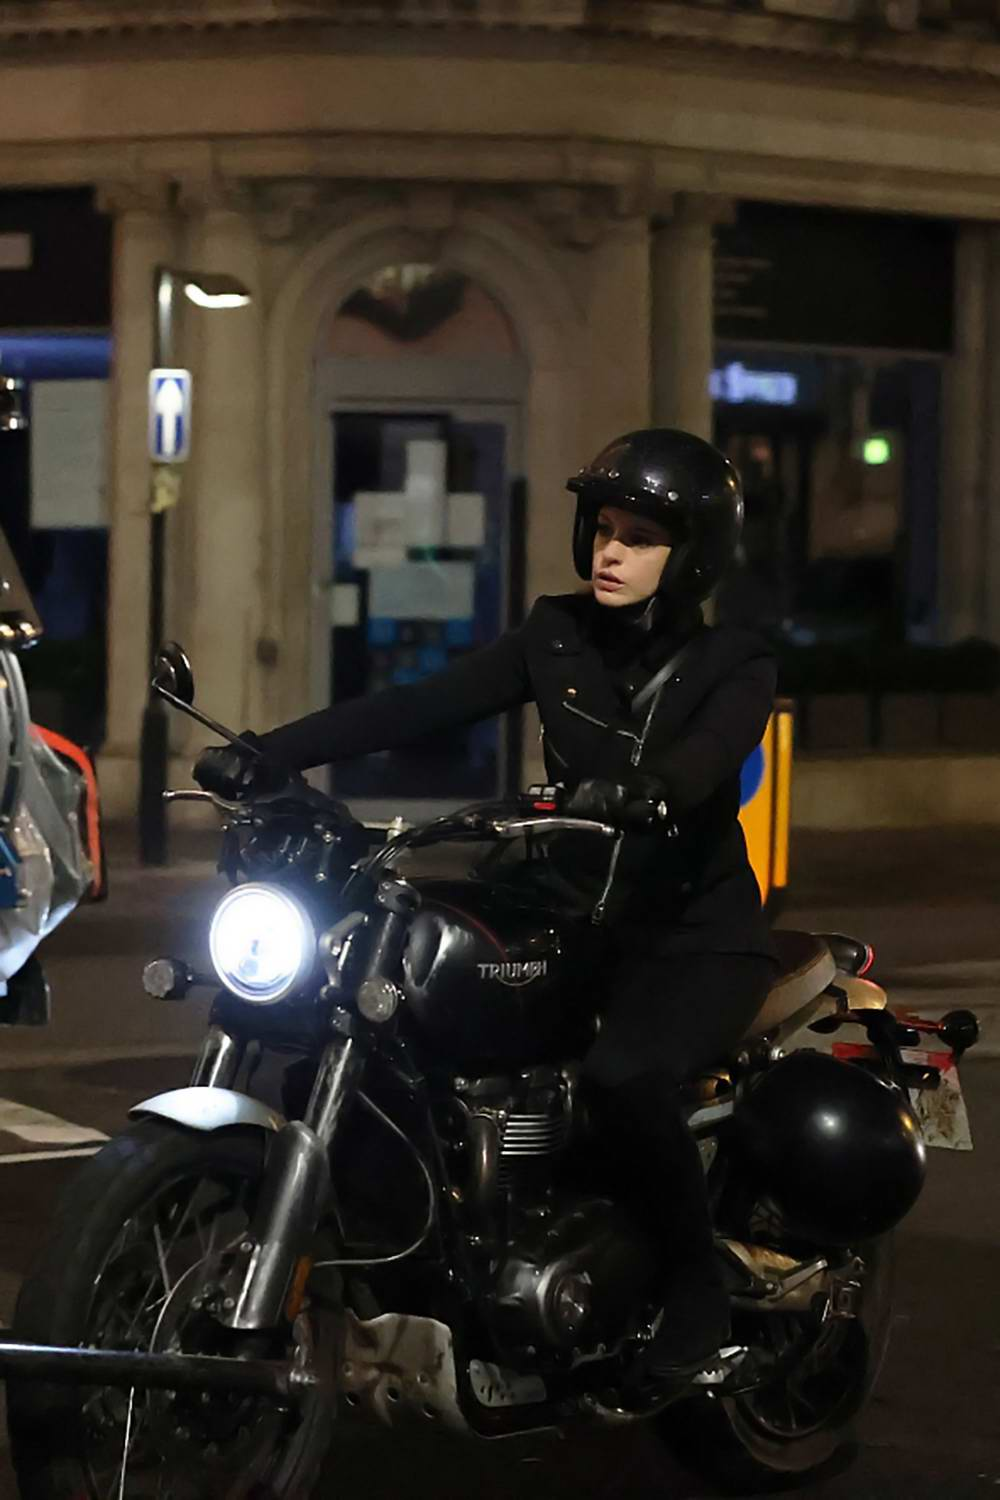 Anne Hathaway seen filming pandemic-themed film 'Lockdown' outside iconic department store Harrods in London, UK